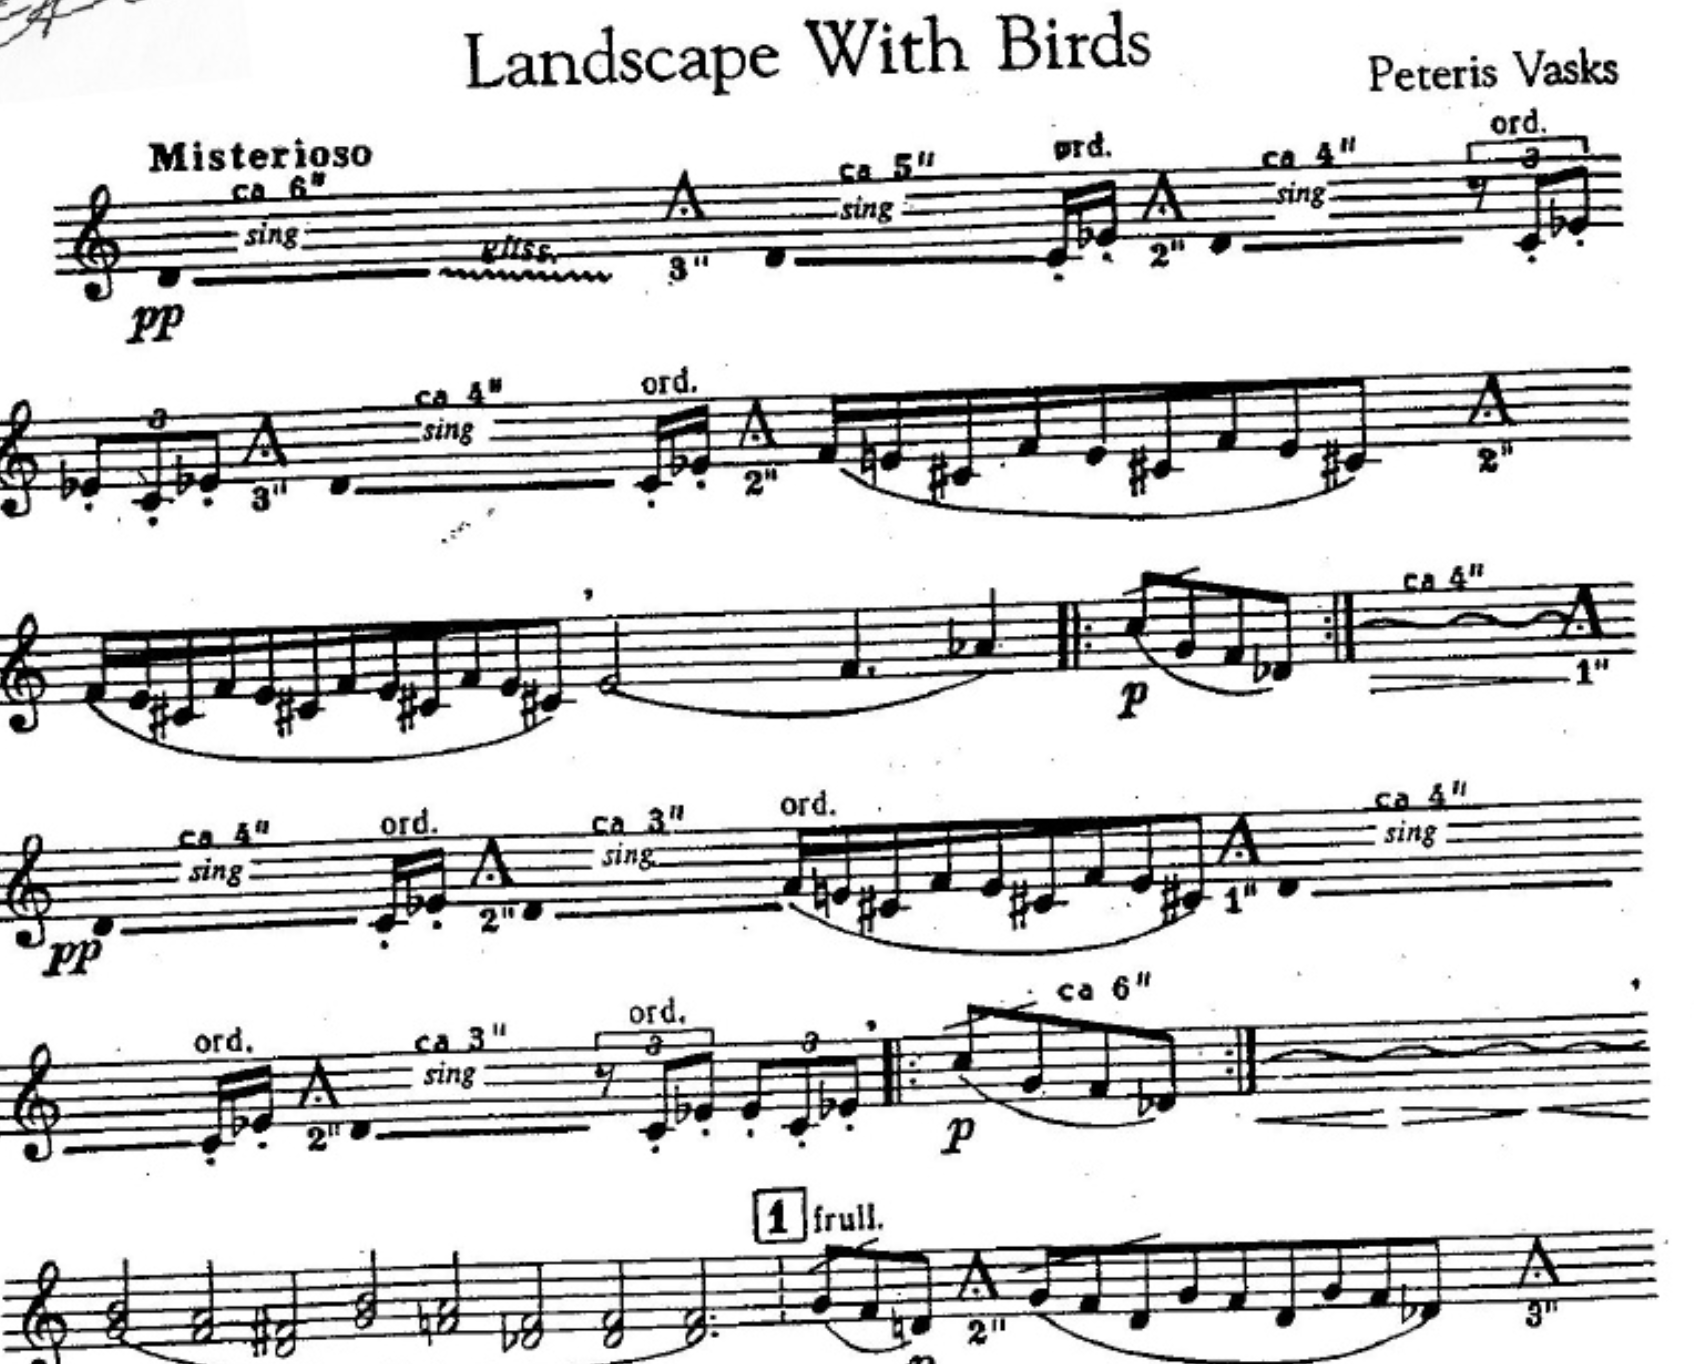 Washington State Recital Tour 1: Wenatchee - Landscape With Birds